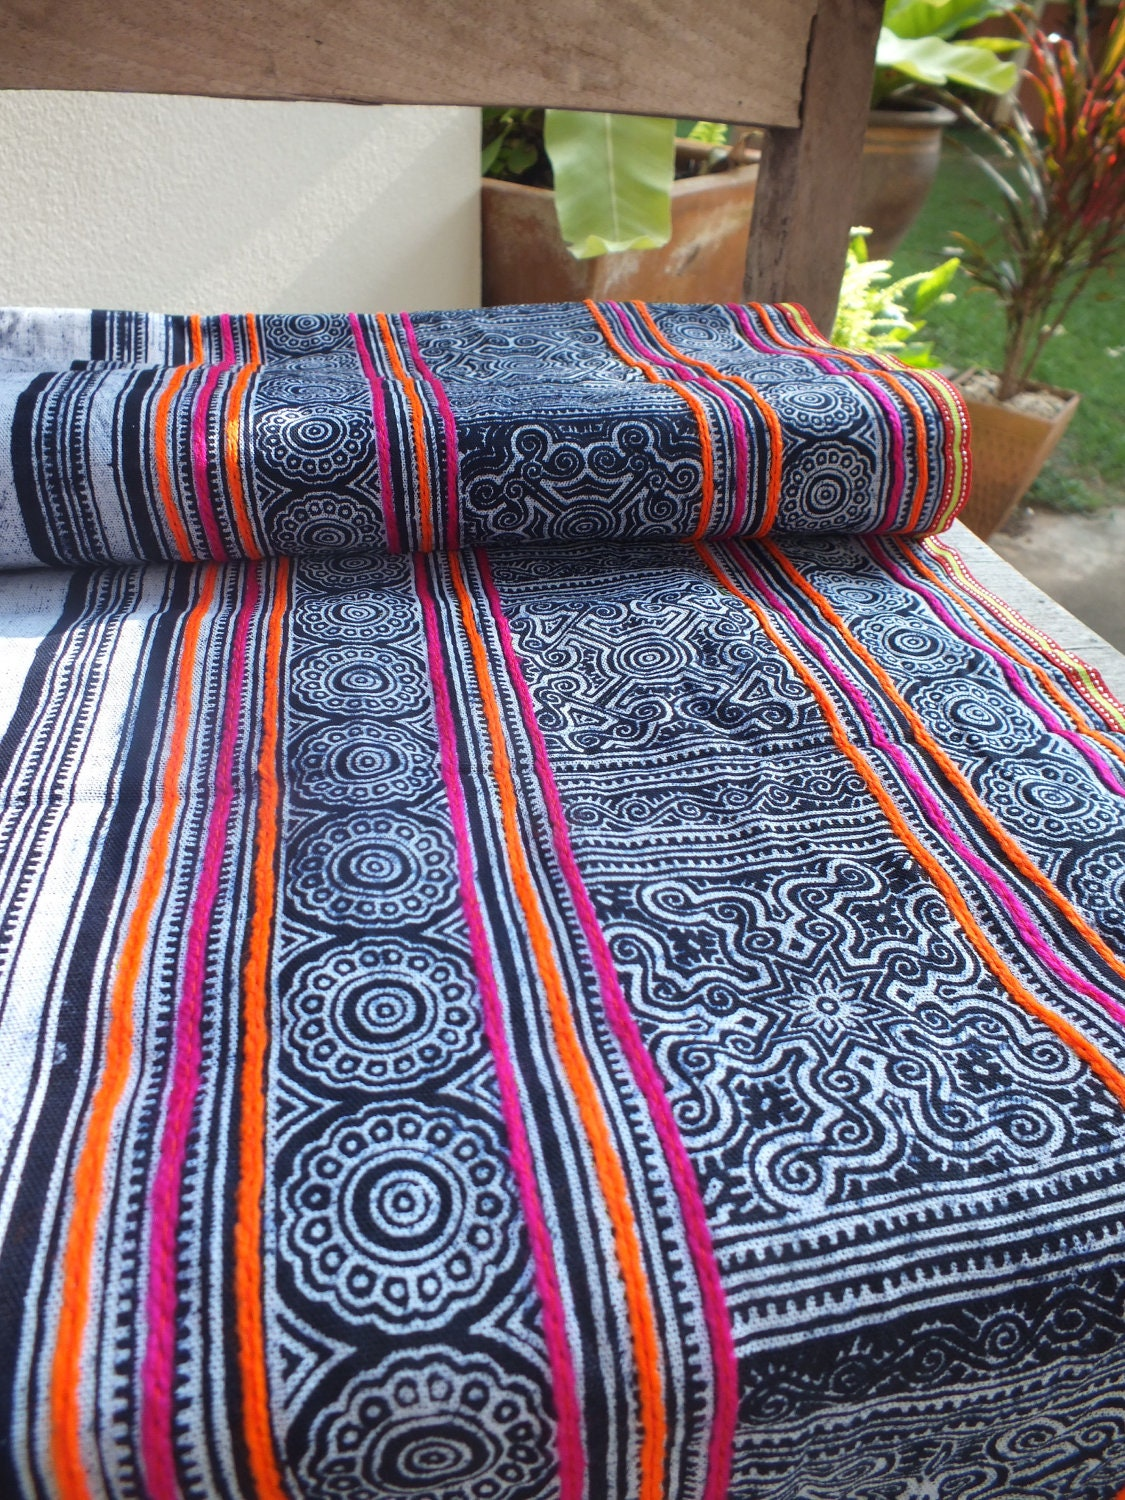 Handwoven Hmong Cotton Vintage Fabric Indigo Textiles And